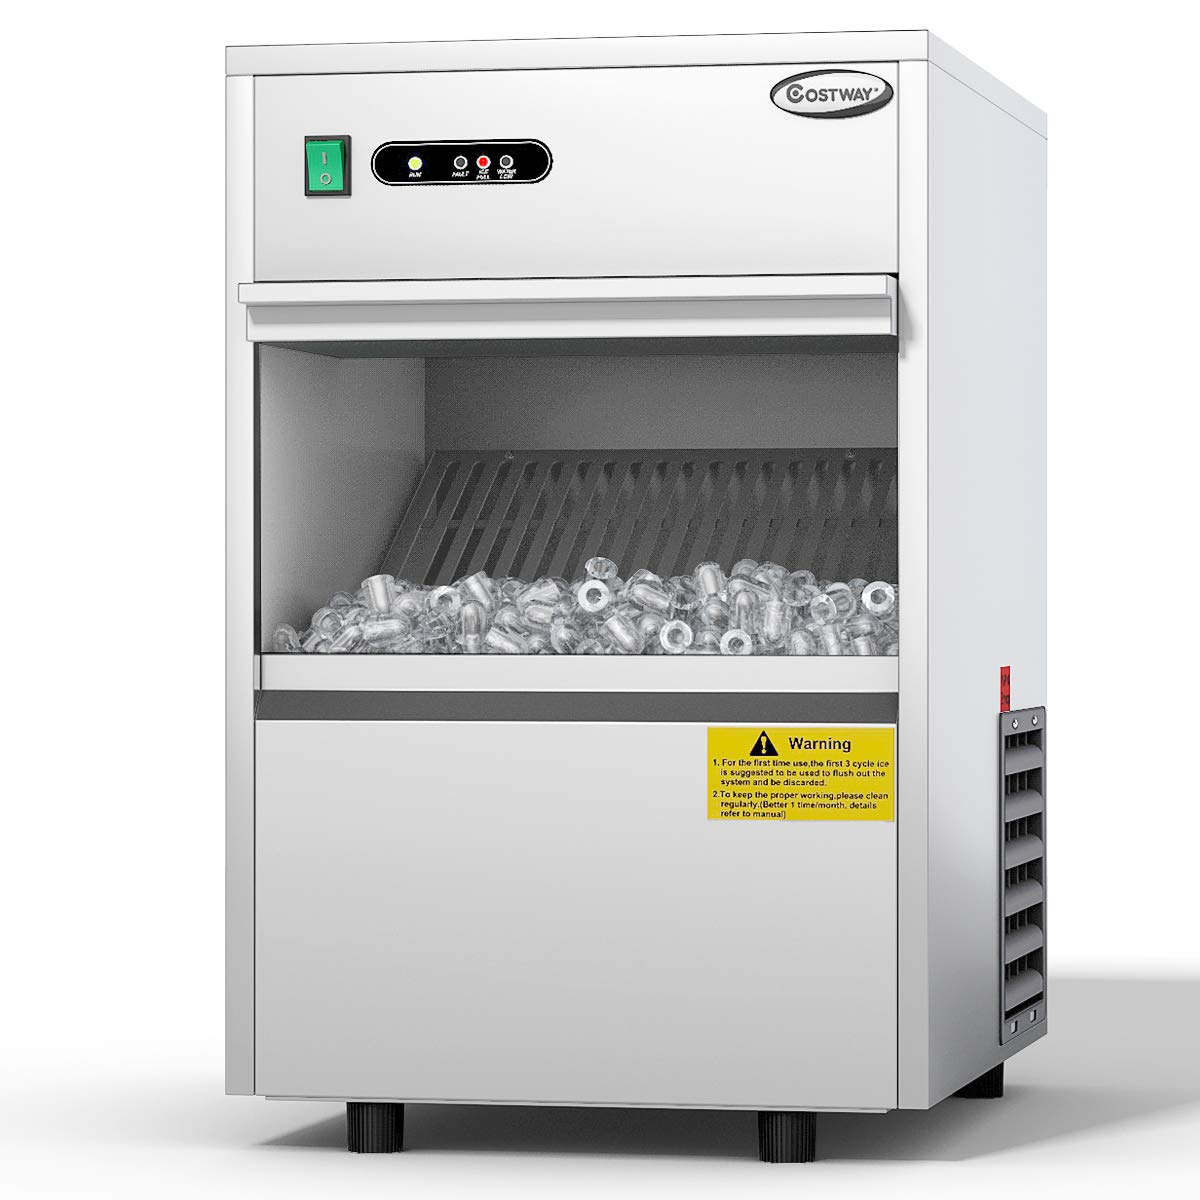 COSTWAY Commercial Ice Machine, 58LBS/24h Freestanding Portable Stainless Steel Ice Maker Machine Under Counter Ice Machine for Restaurants Bars (58LBS/24h)